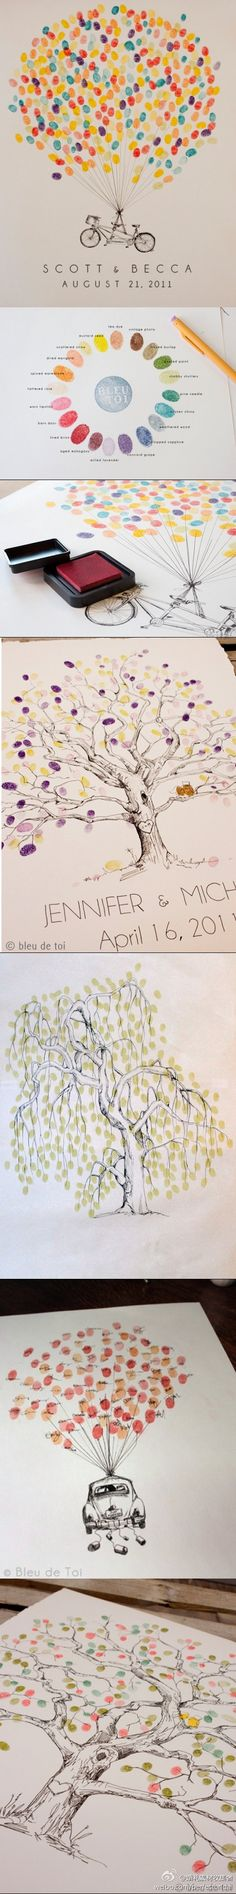 Baby shower idea ~ have everyone at the shower put a thumb prints on a picture in the nursery colors.